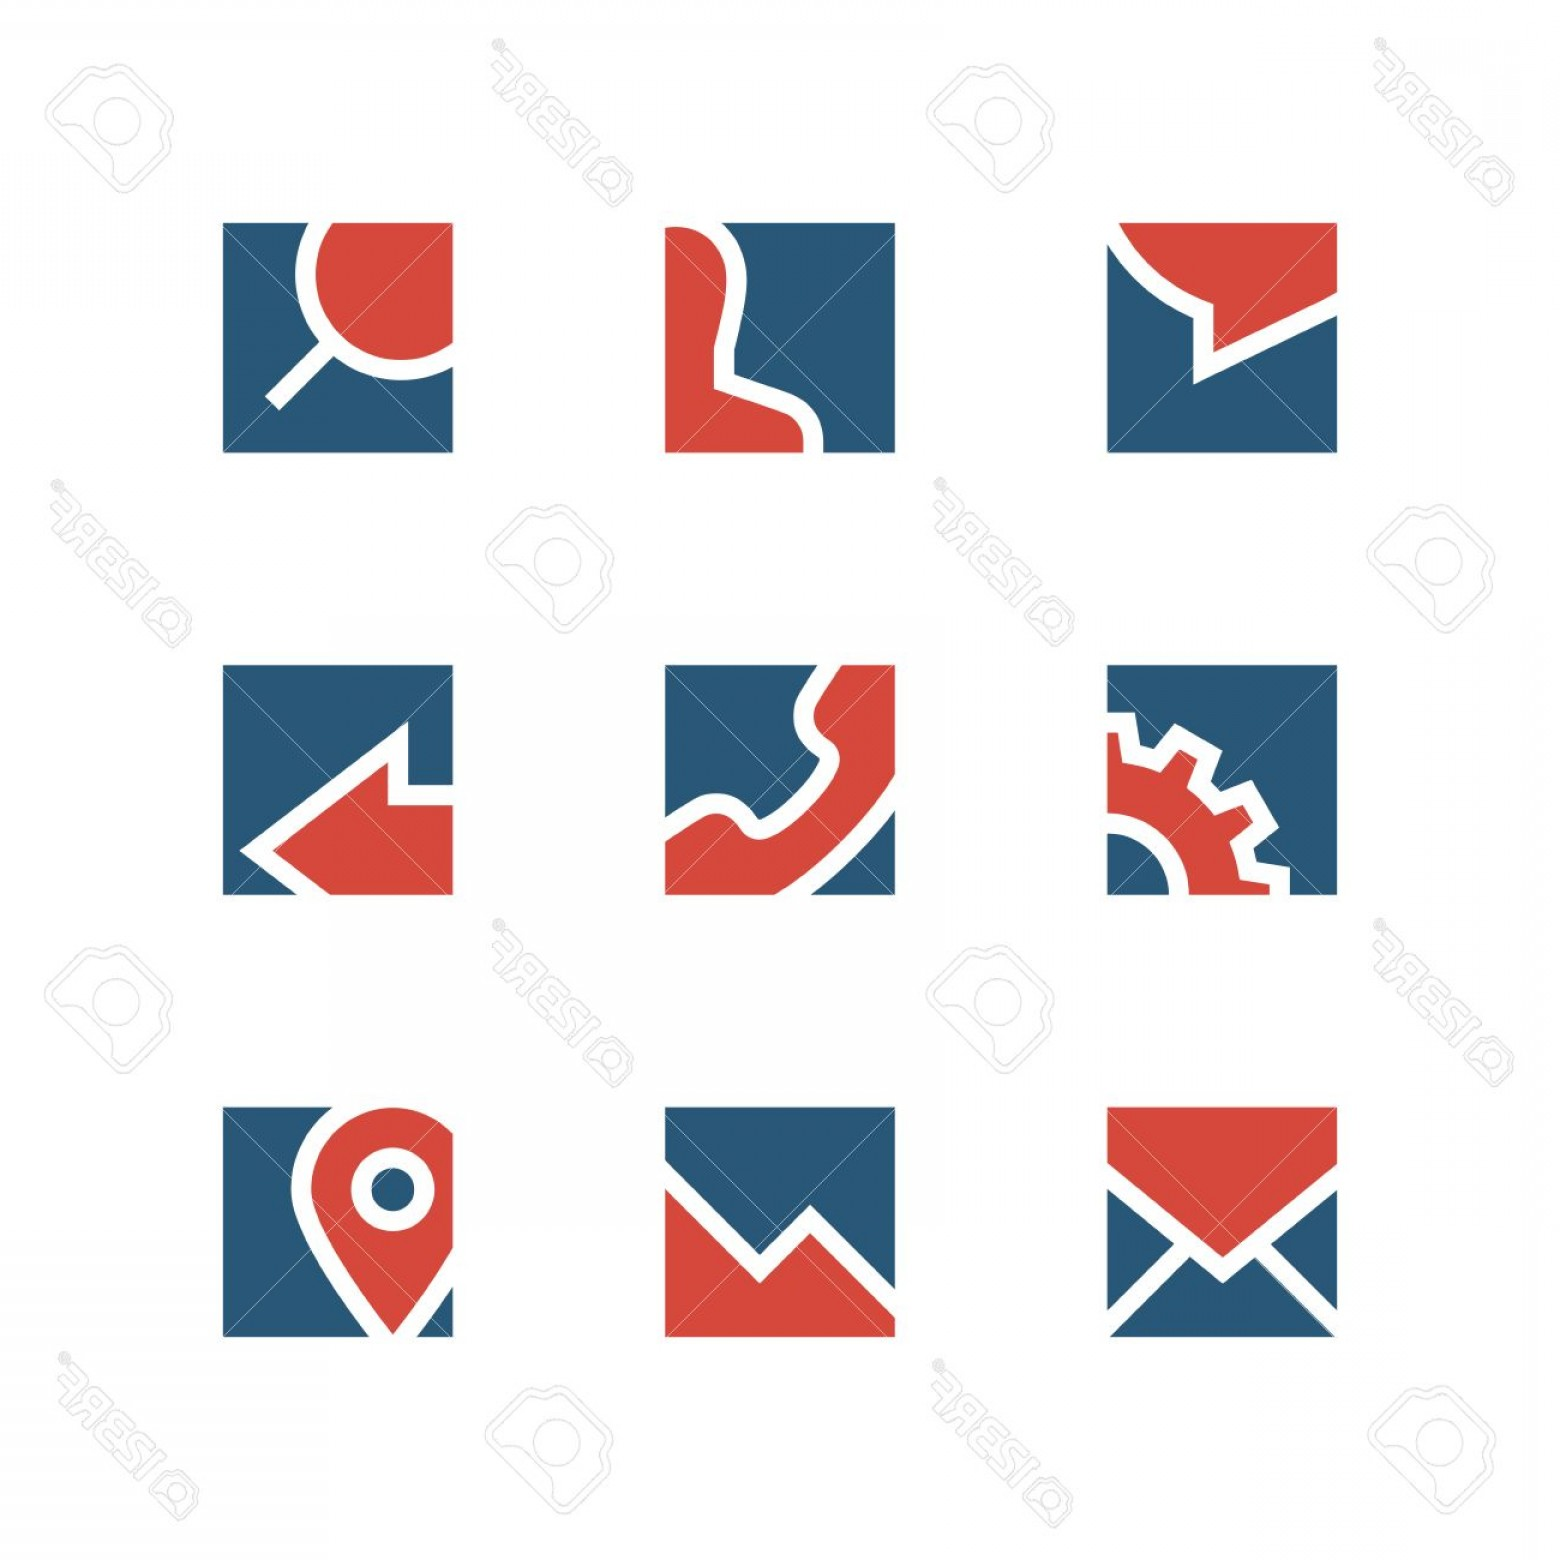 Simple Vector Logo: Photostock Vector Business Simple Vector Logo Set Chat Man Search Gear Phone Arrow Mail Address And Graph